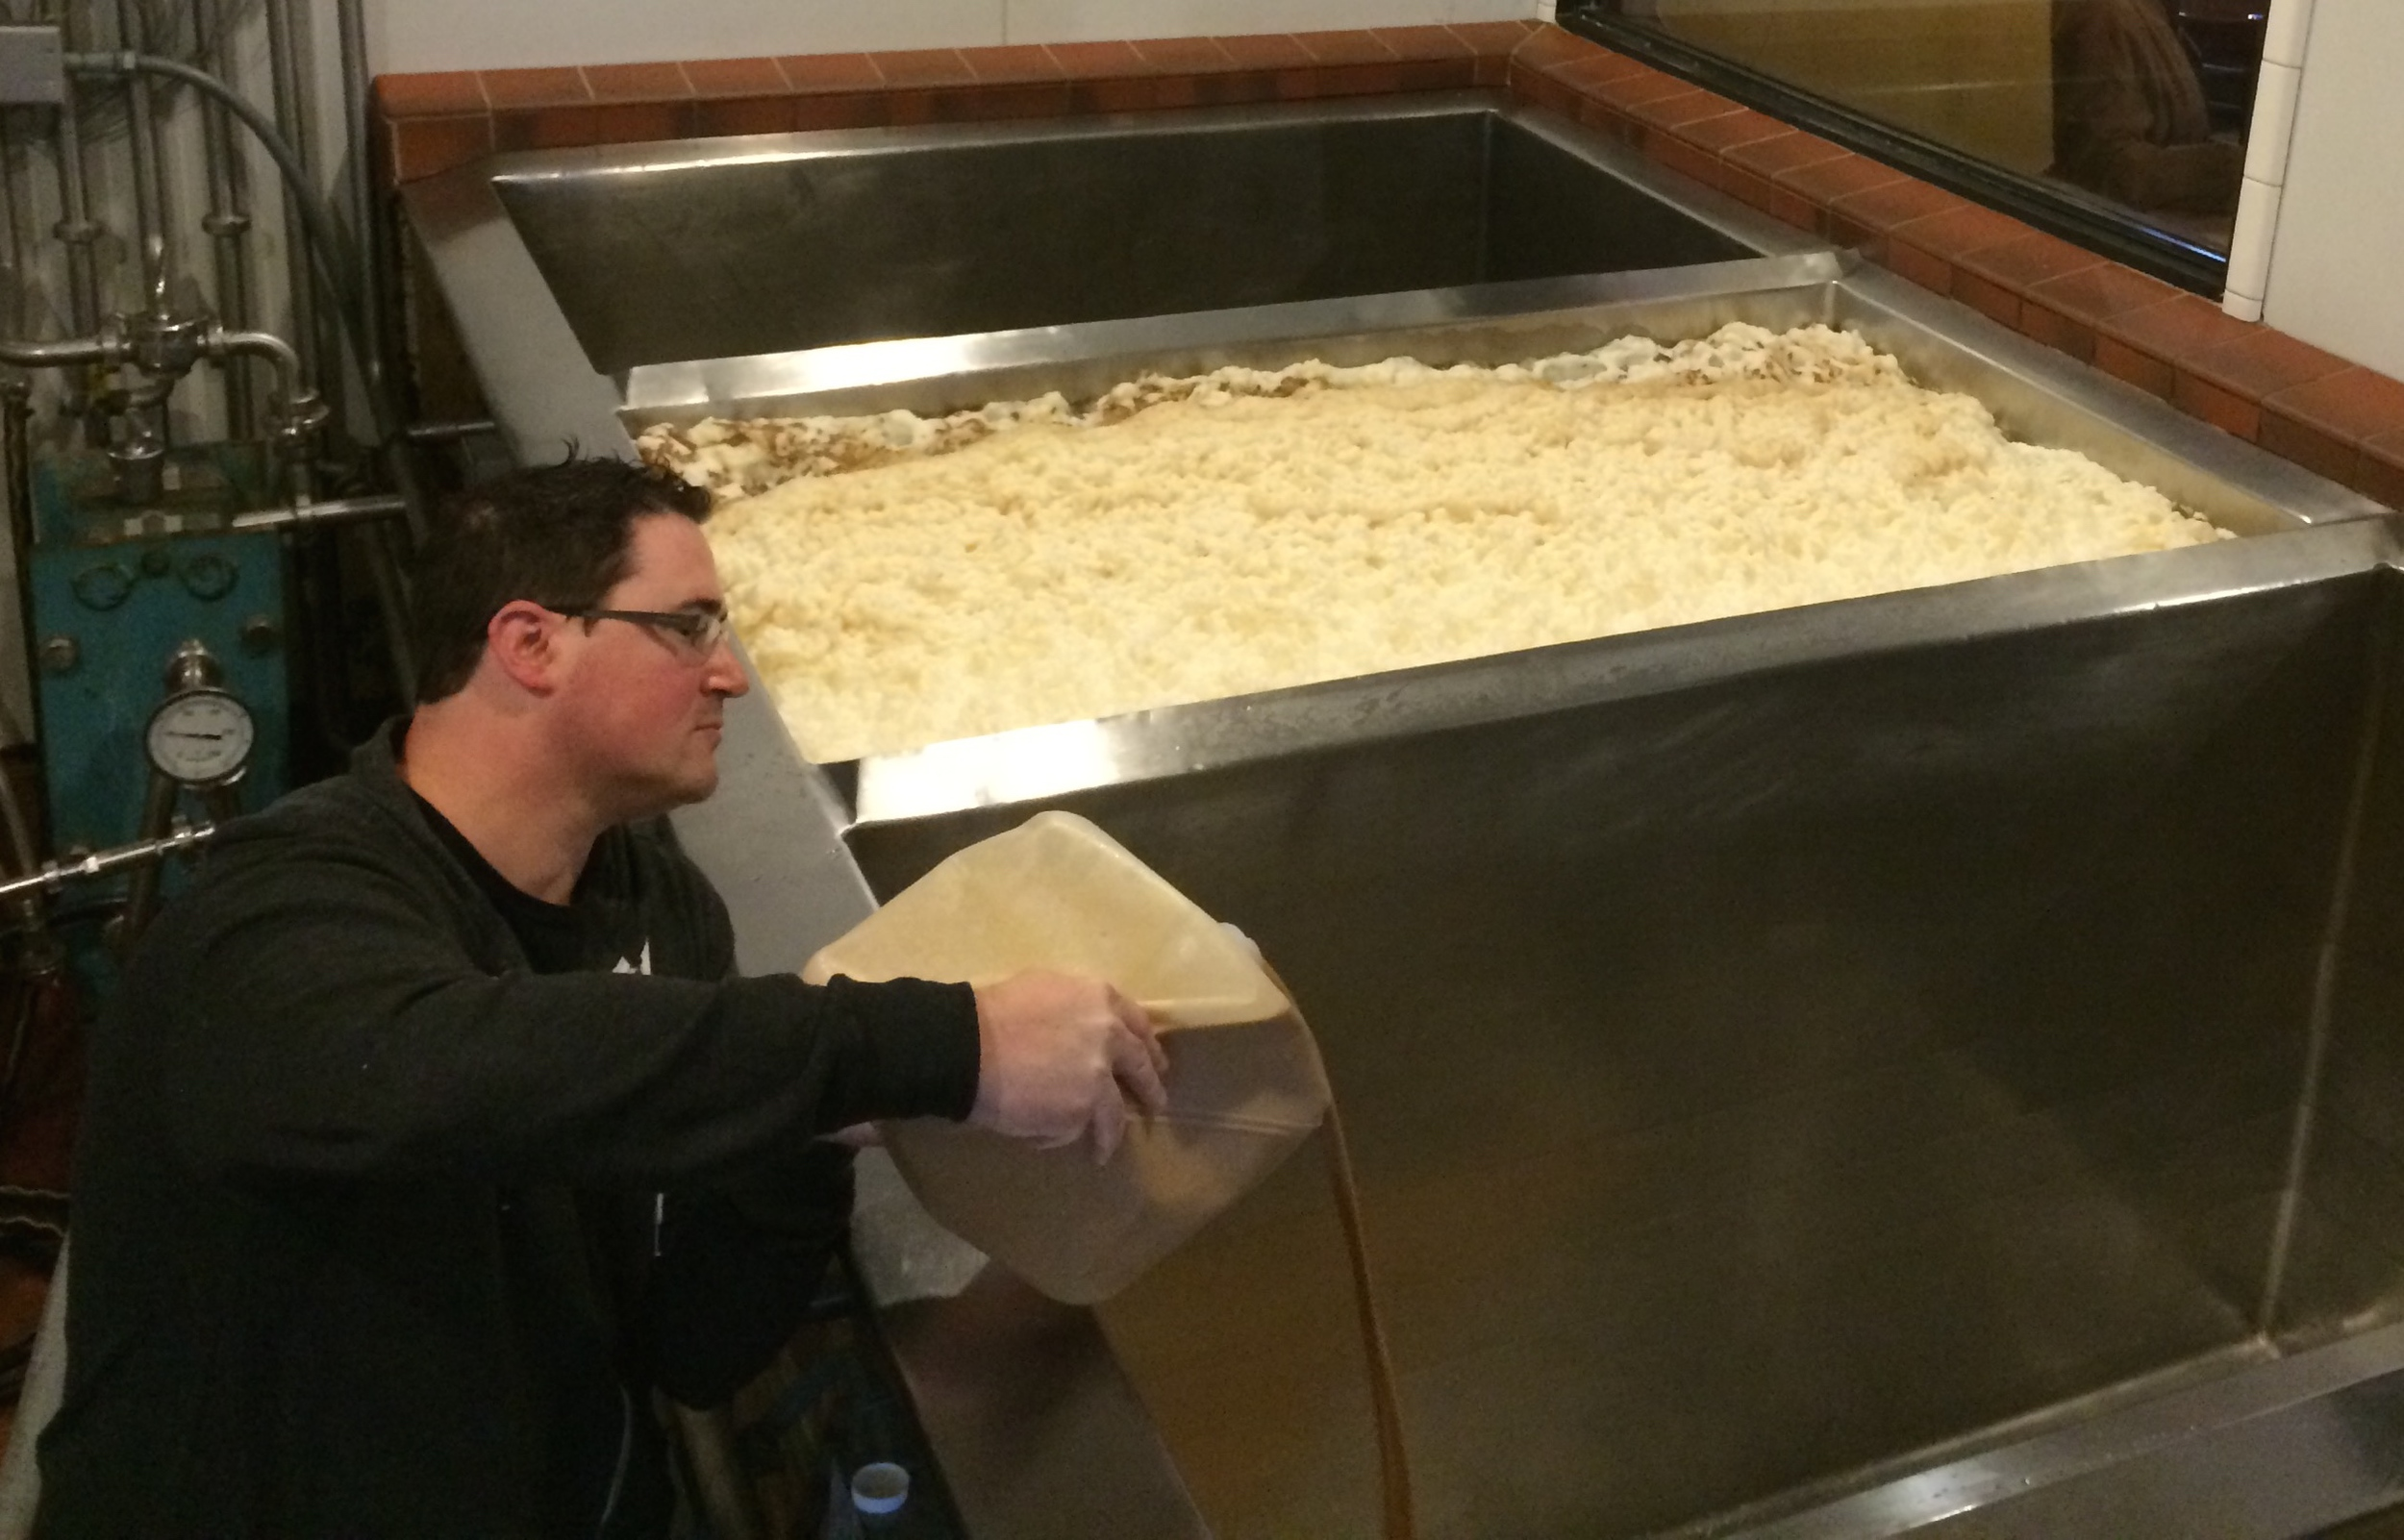 Peter Hoey of BSG CraftBrewing pitches the Saison yeast for the Fünke Canadien into an open-fermentation tank at Sudwerk Brewery in Davis, Calif., in February.